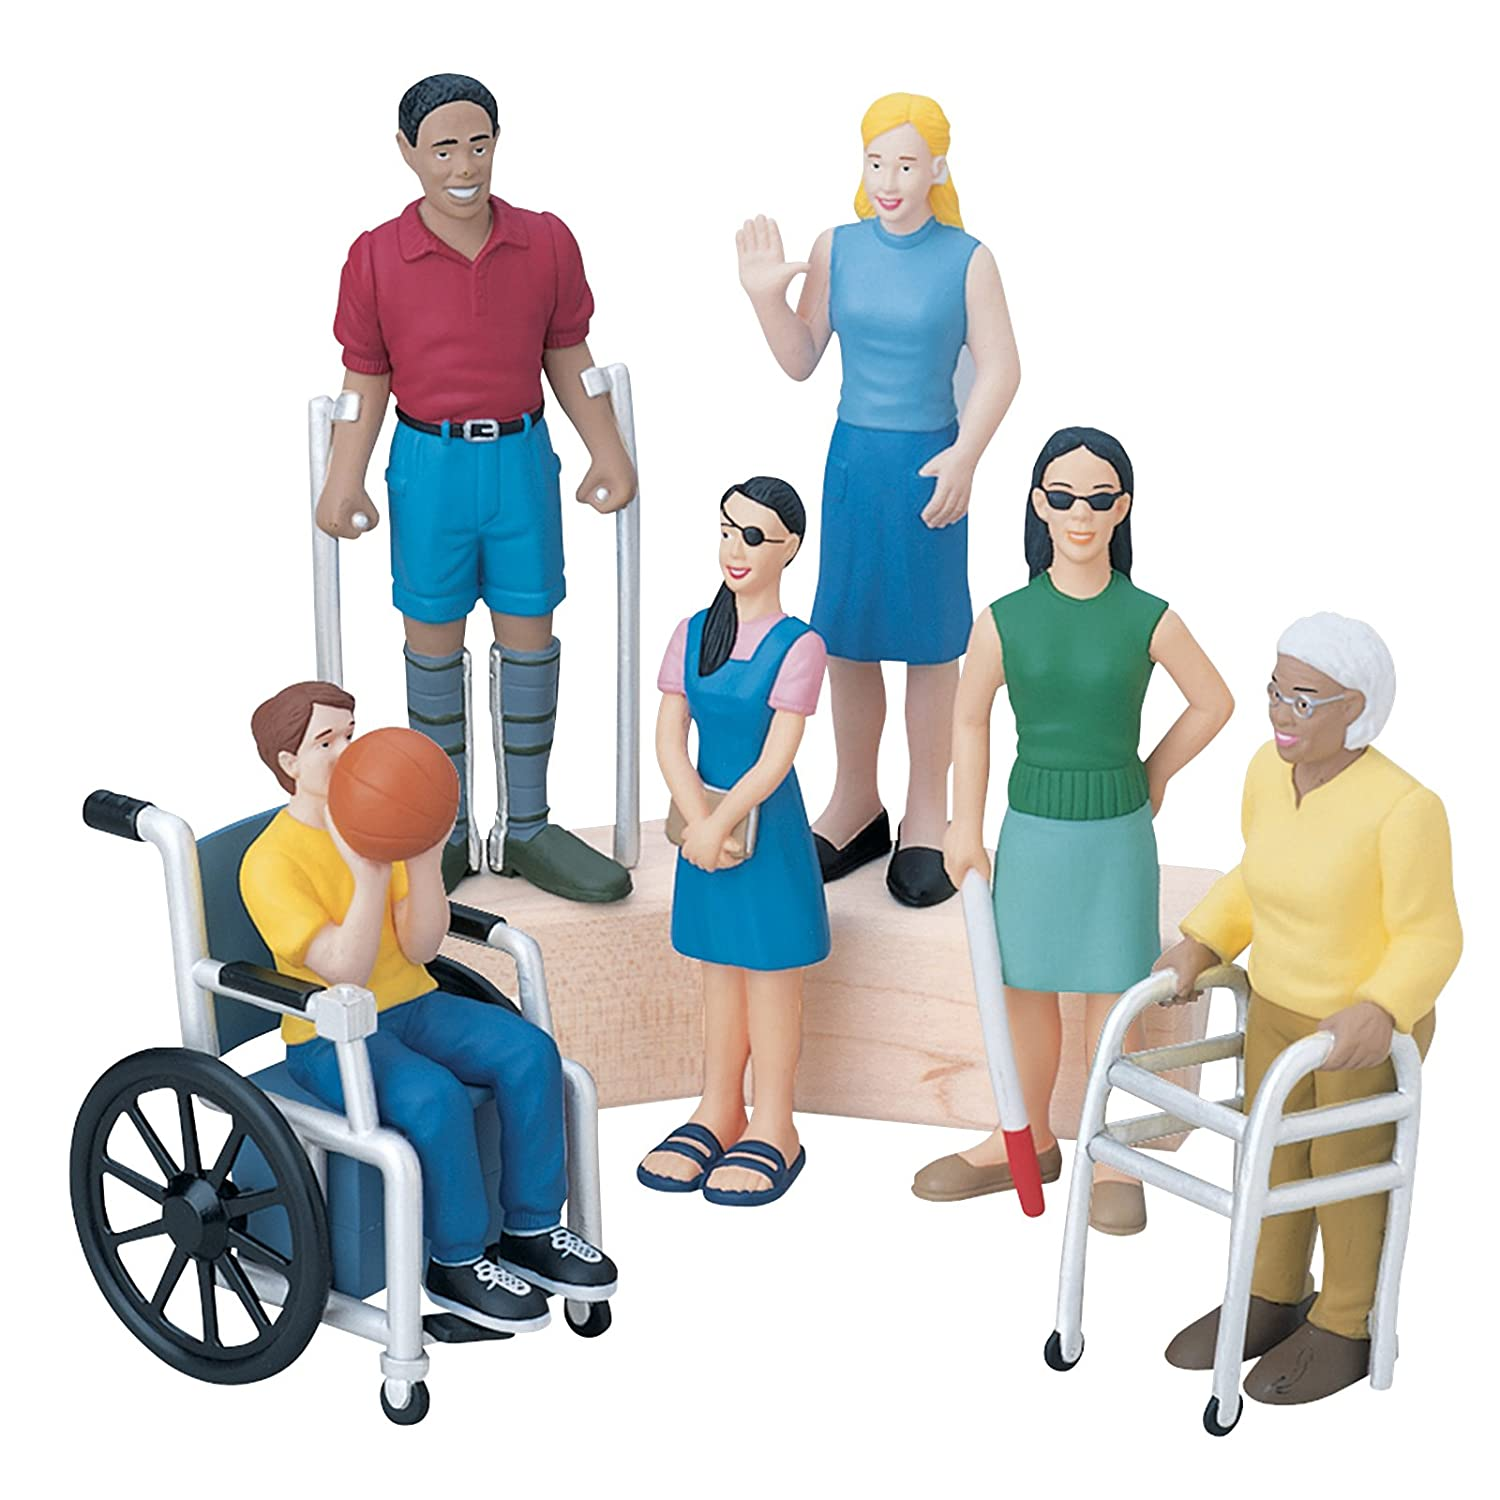 Marvel Education MTC-164 Friends with Diverse Abilities Figure Set, Grade: Kindergarten to 3